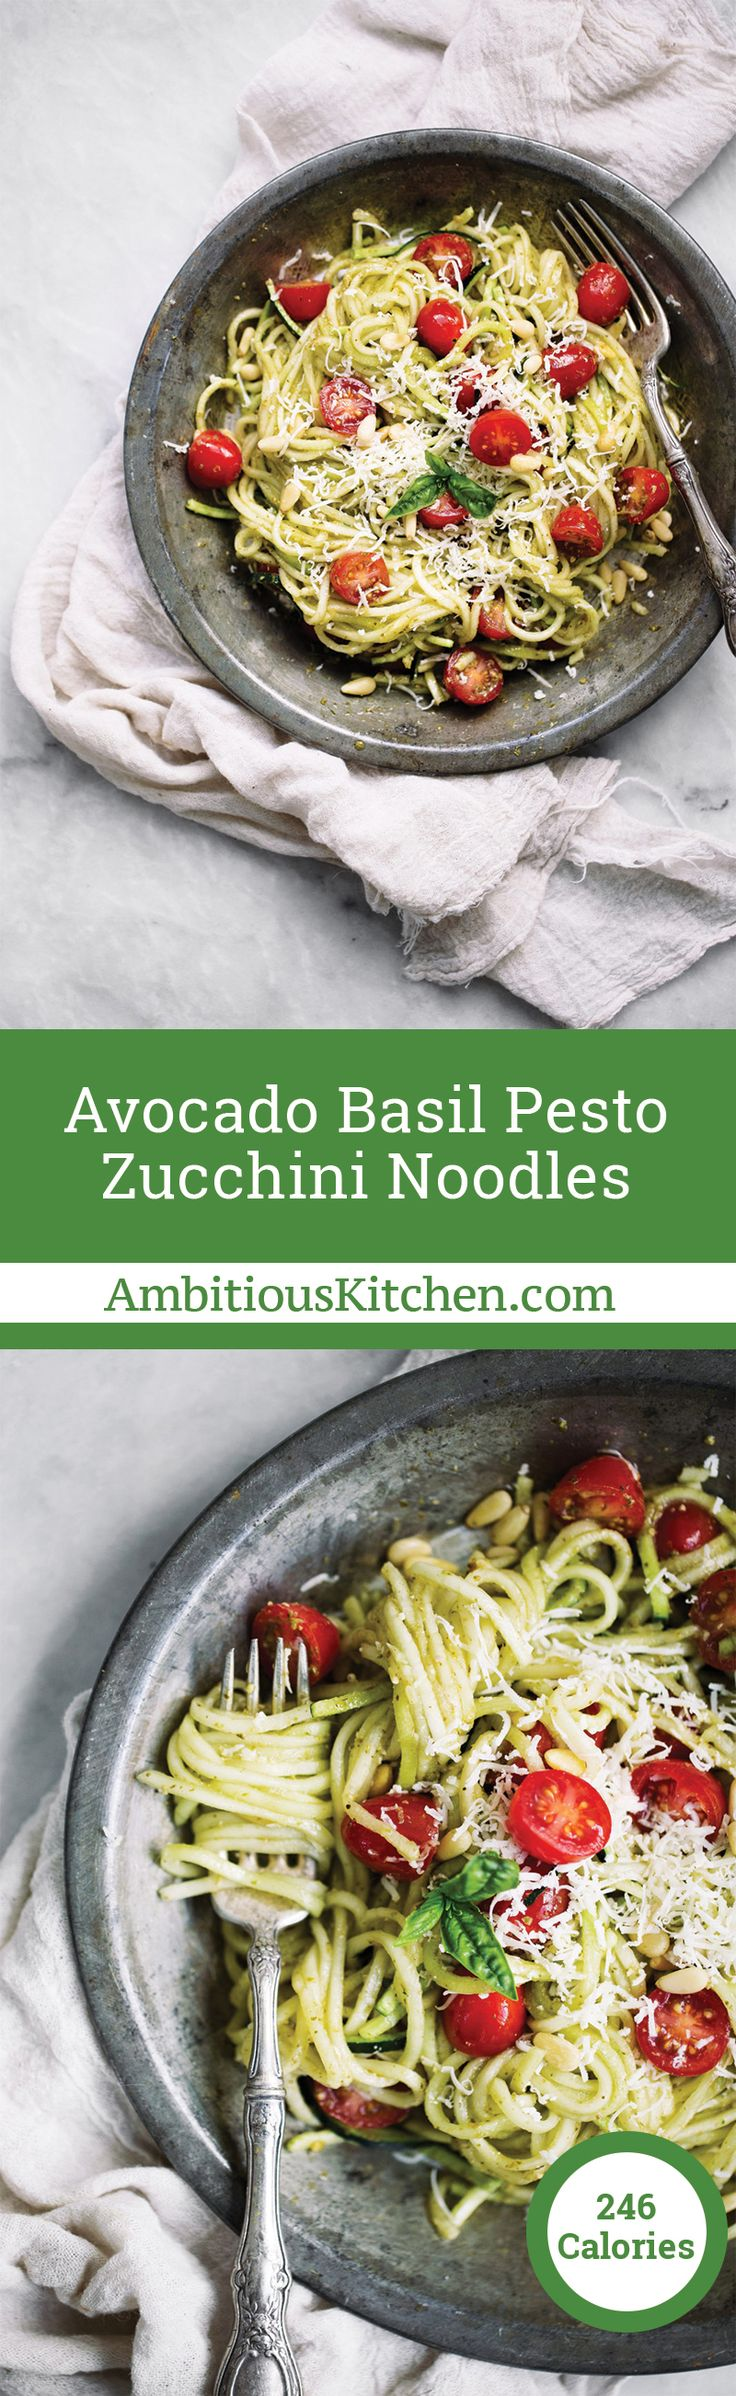 Fabulous and healthy zucchini noodles with a quick and easy avocado basil pesto sauce. Enjoy with grilled chicken for a full meal.